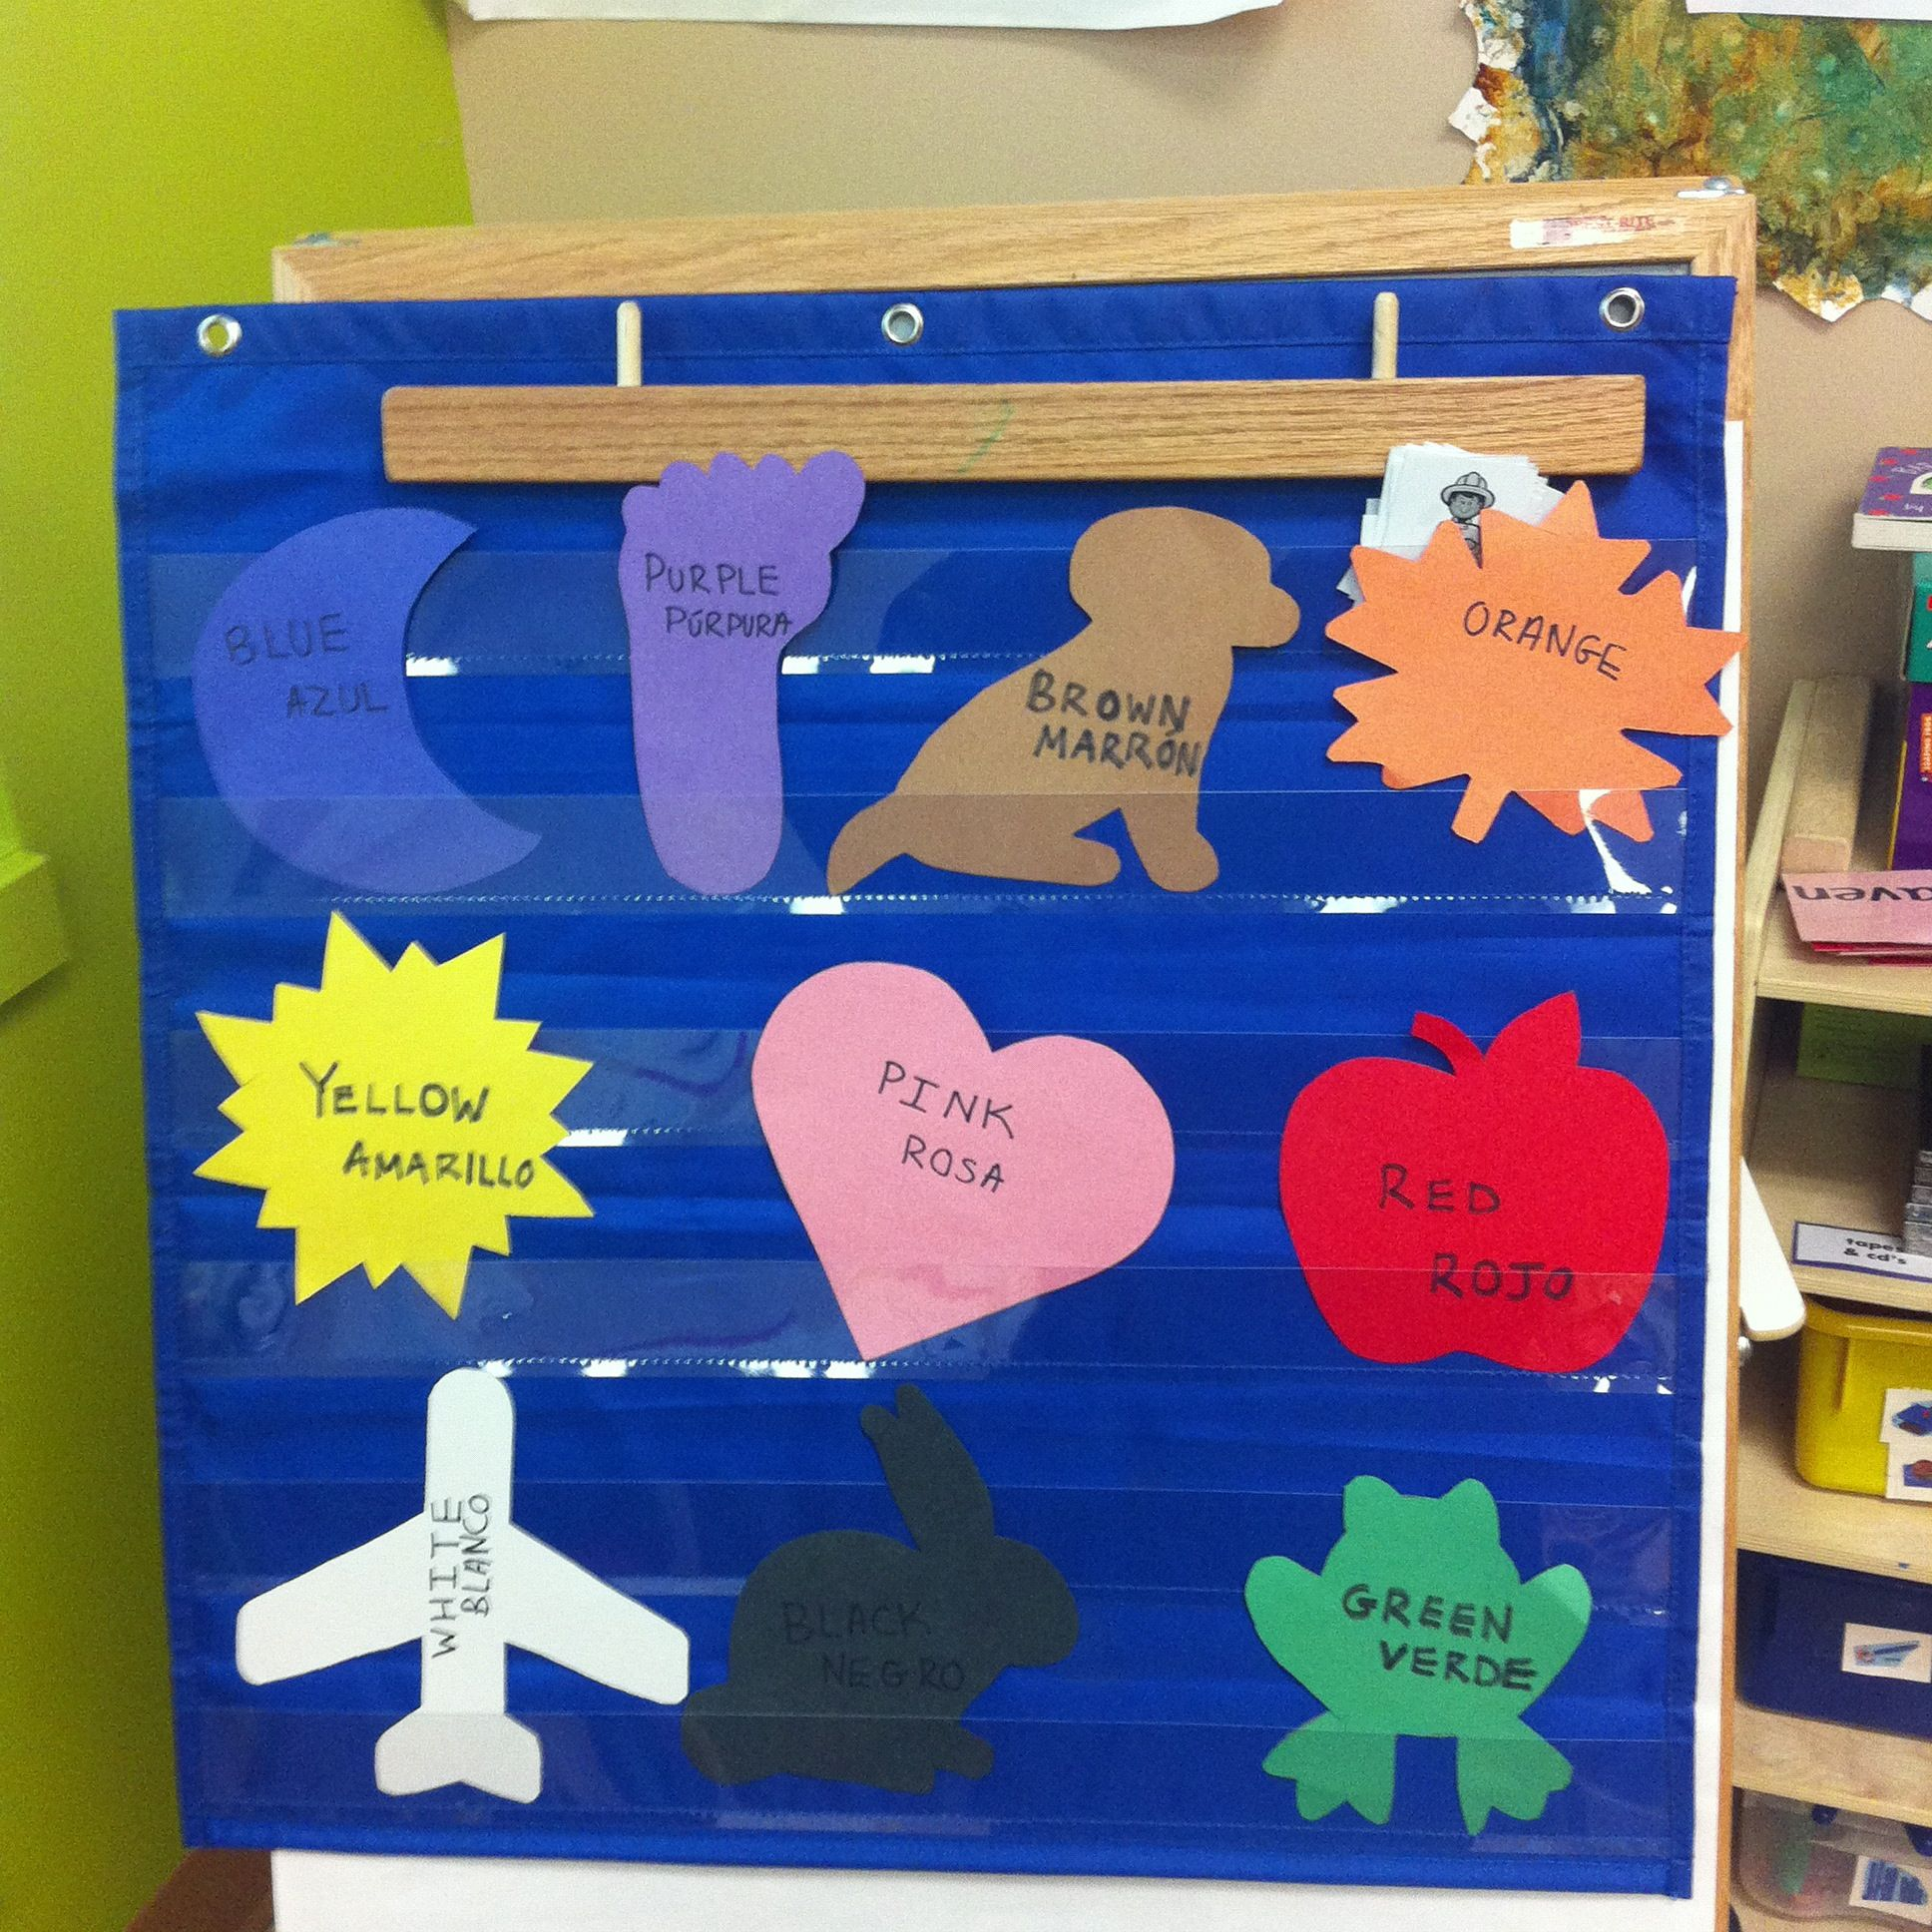 Bold Shapes To Review Colors Use During Activities In A